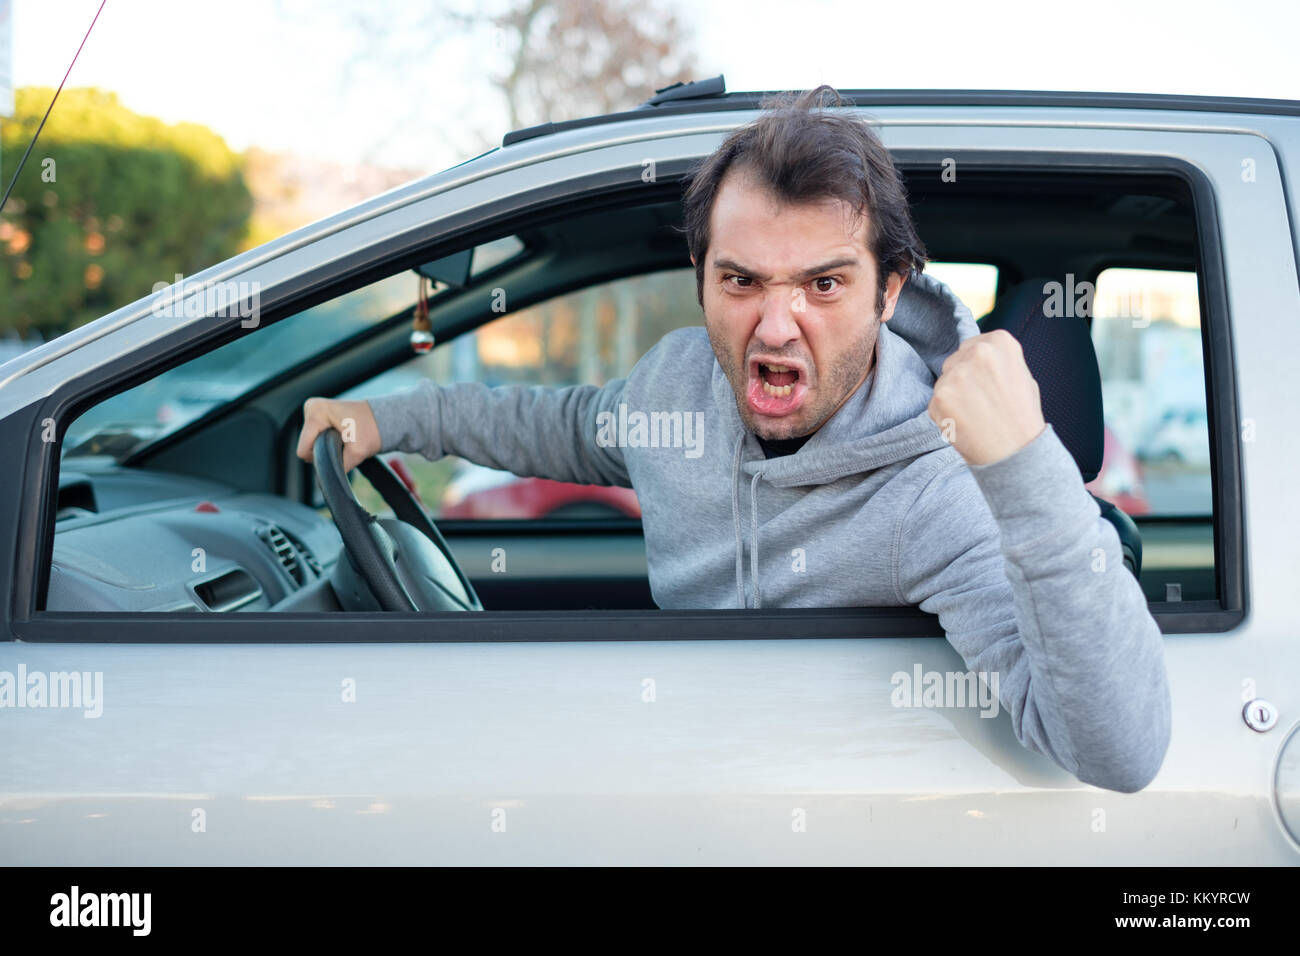 Portrait of angry driver at the wheel. Negative human emotions face expression - Stock Image